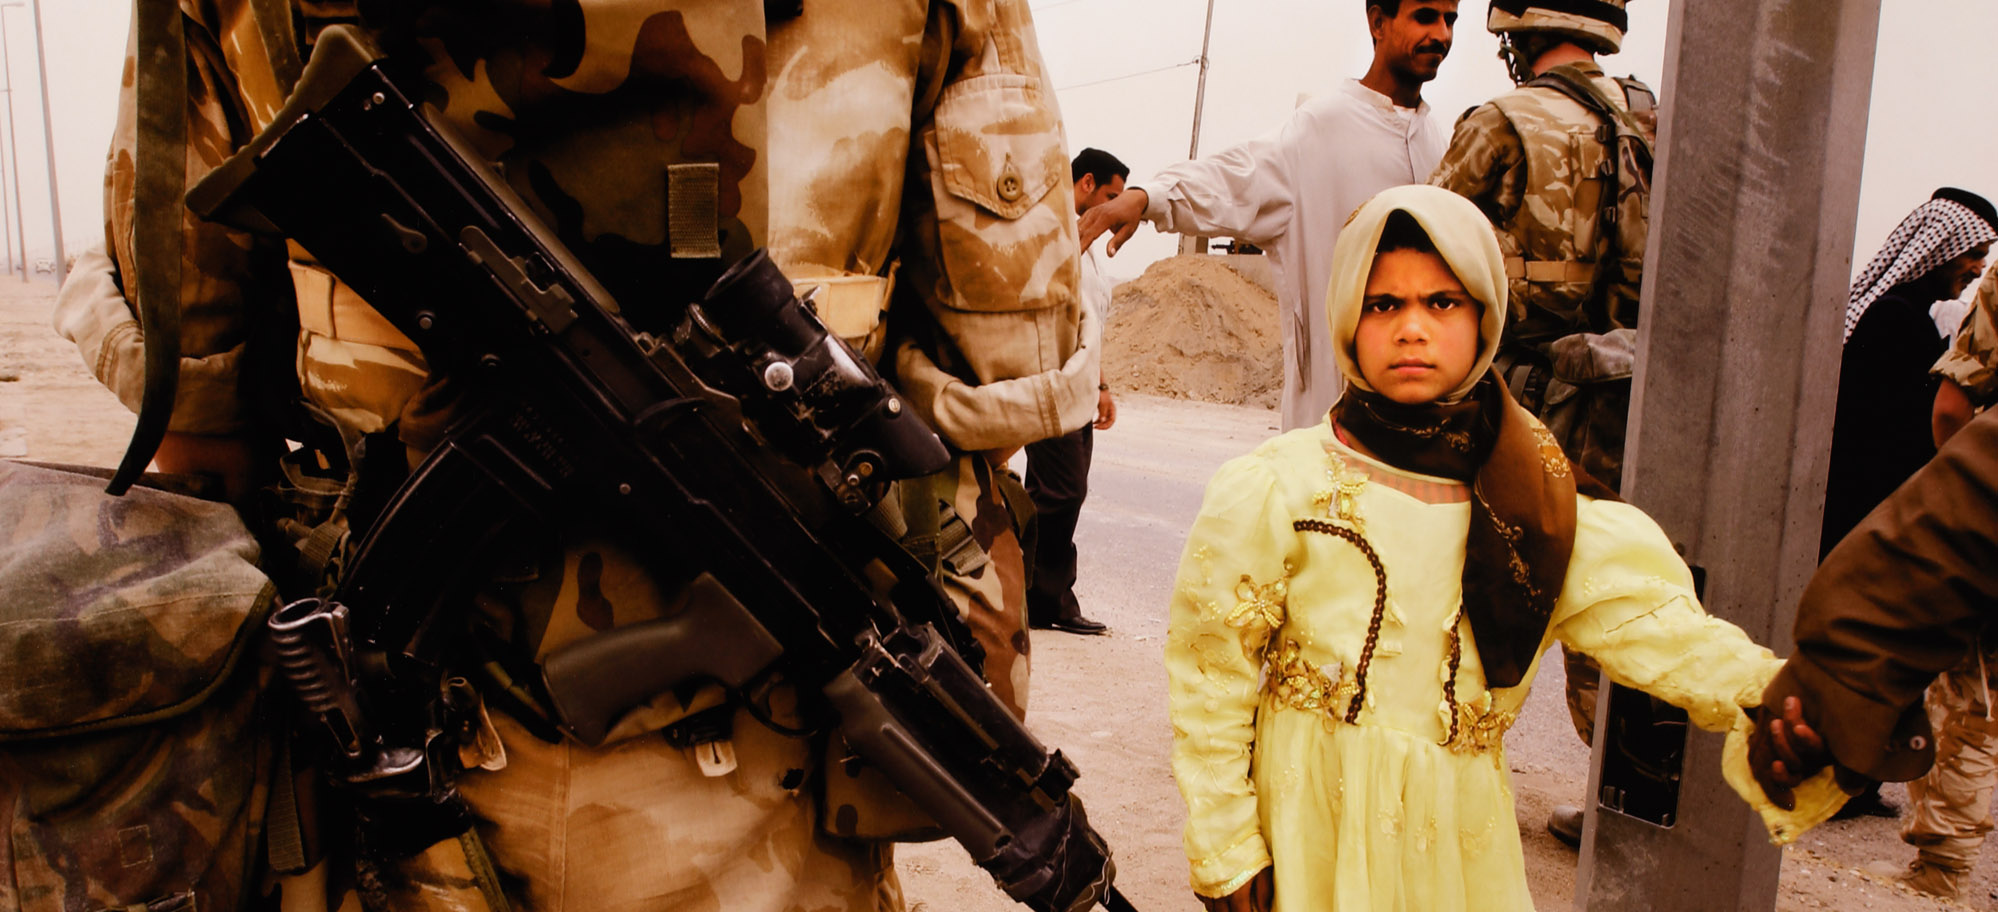 Peter Turnley. The War in Iraq, Near Basra, Iraq, 2003. Archival pigment print.